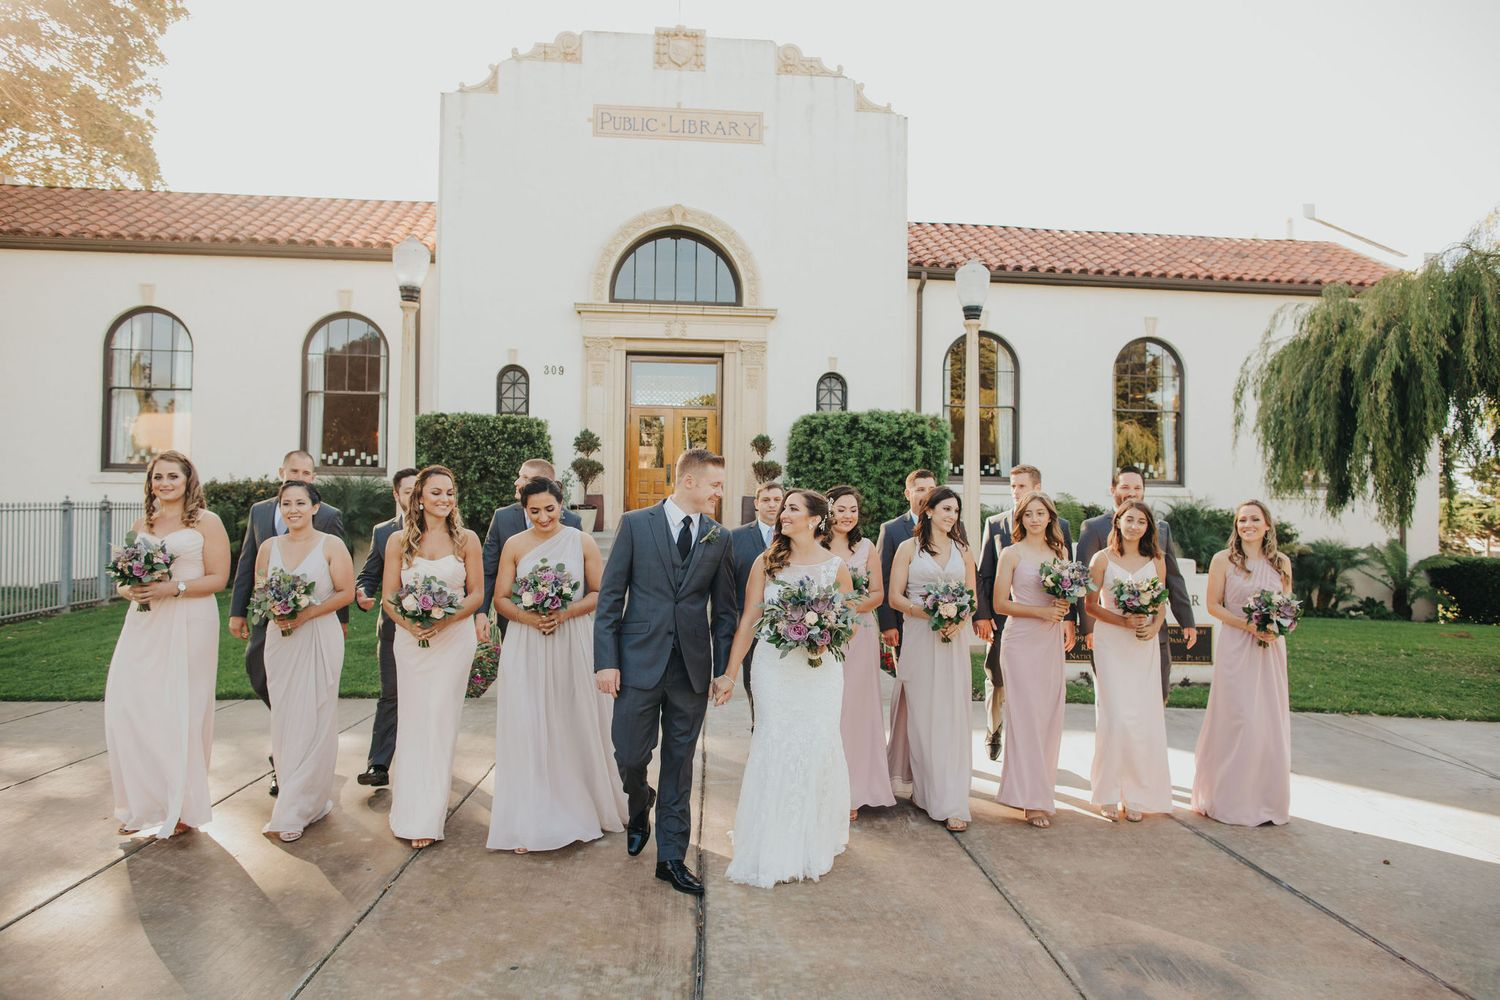 Wedding Party Walk | Redondo Beach Historic Library